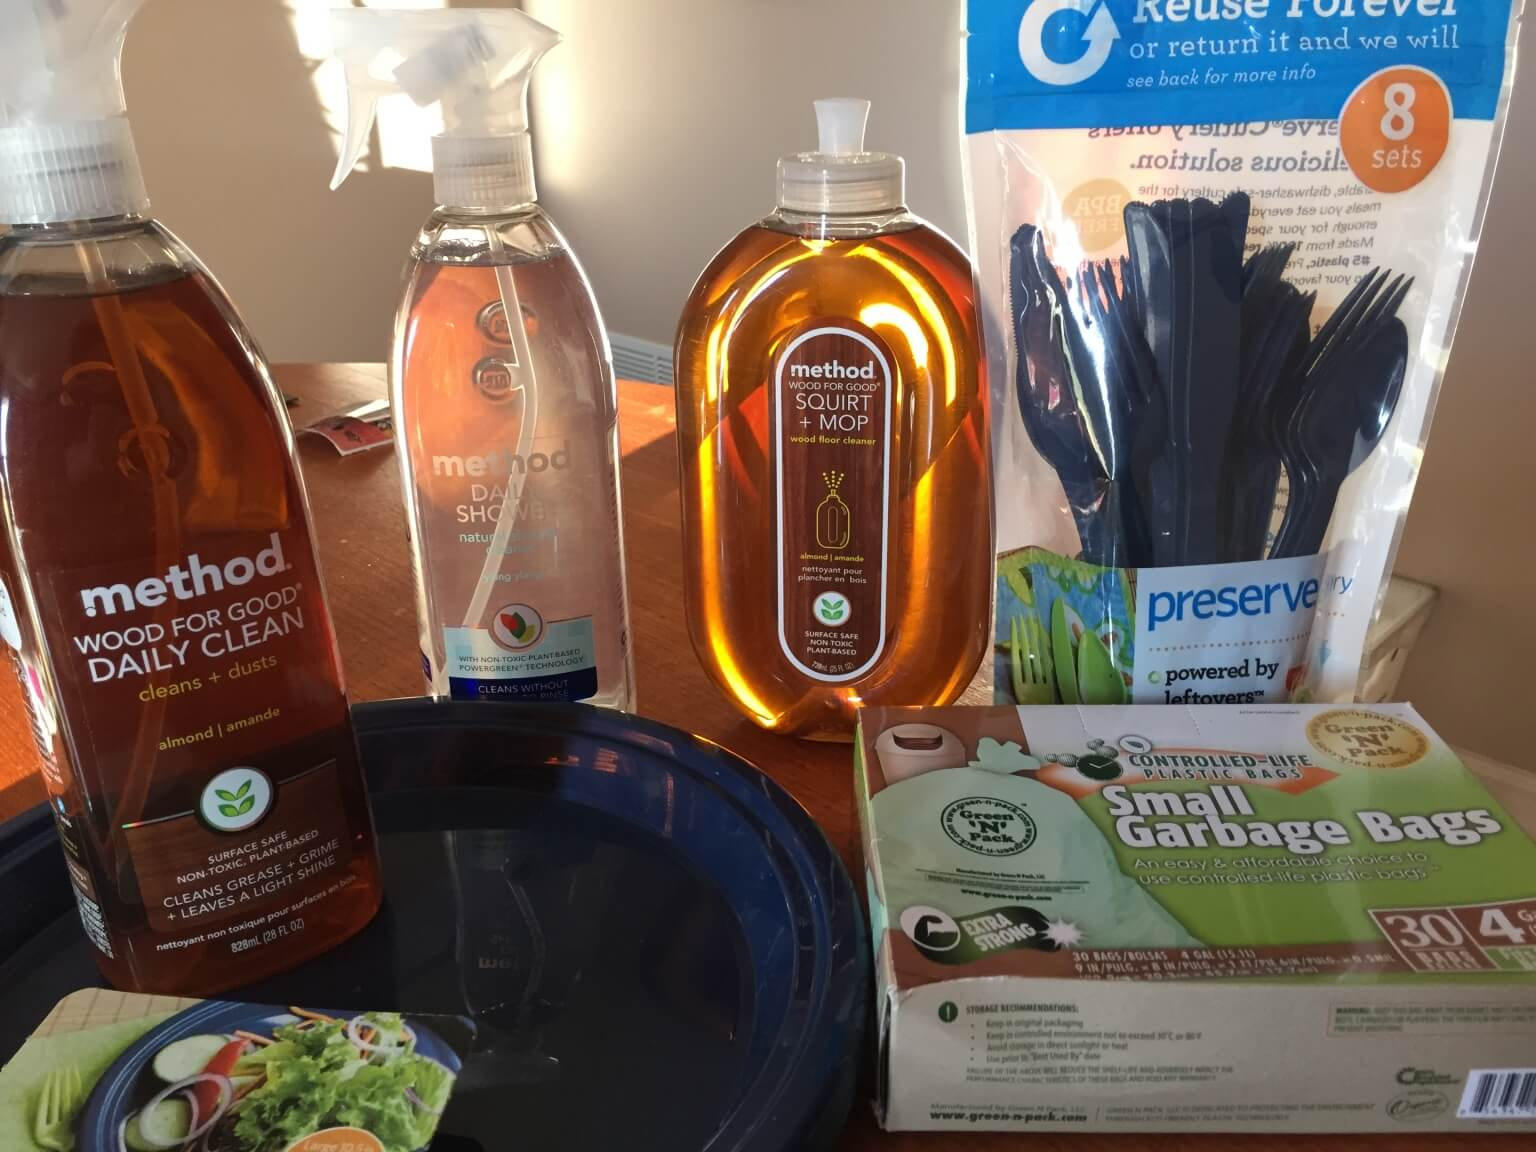 ePantry Review & $10 Free Credit + Free Method Powerfoam + Free Shipping! Expires Friday!